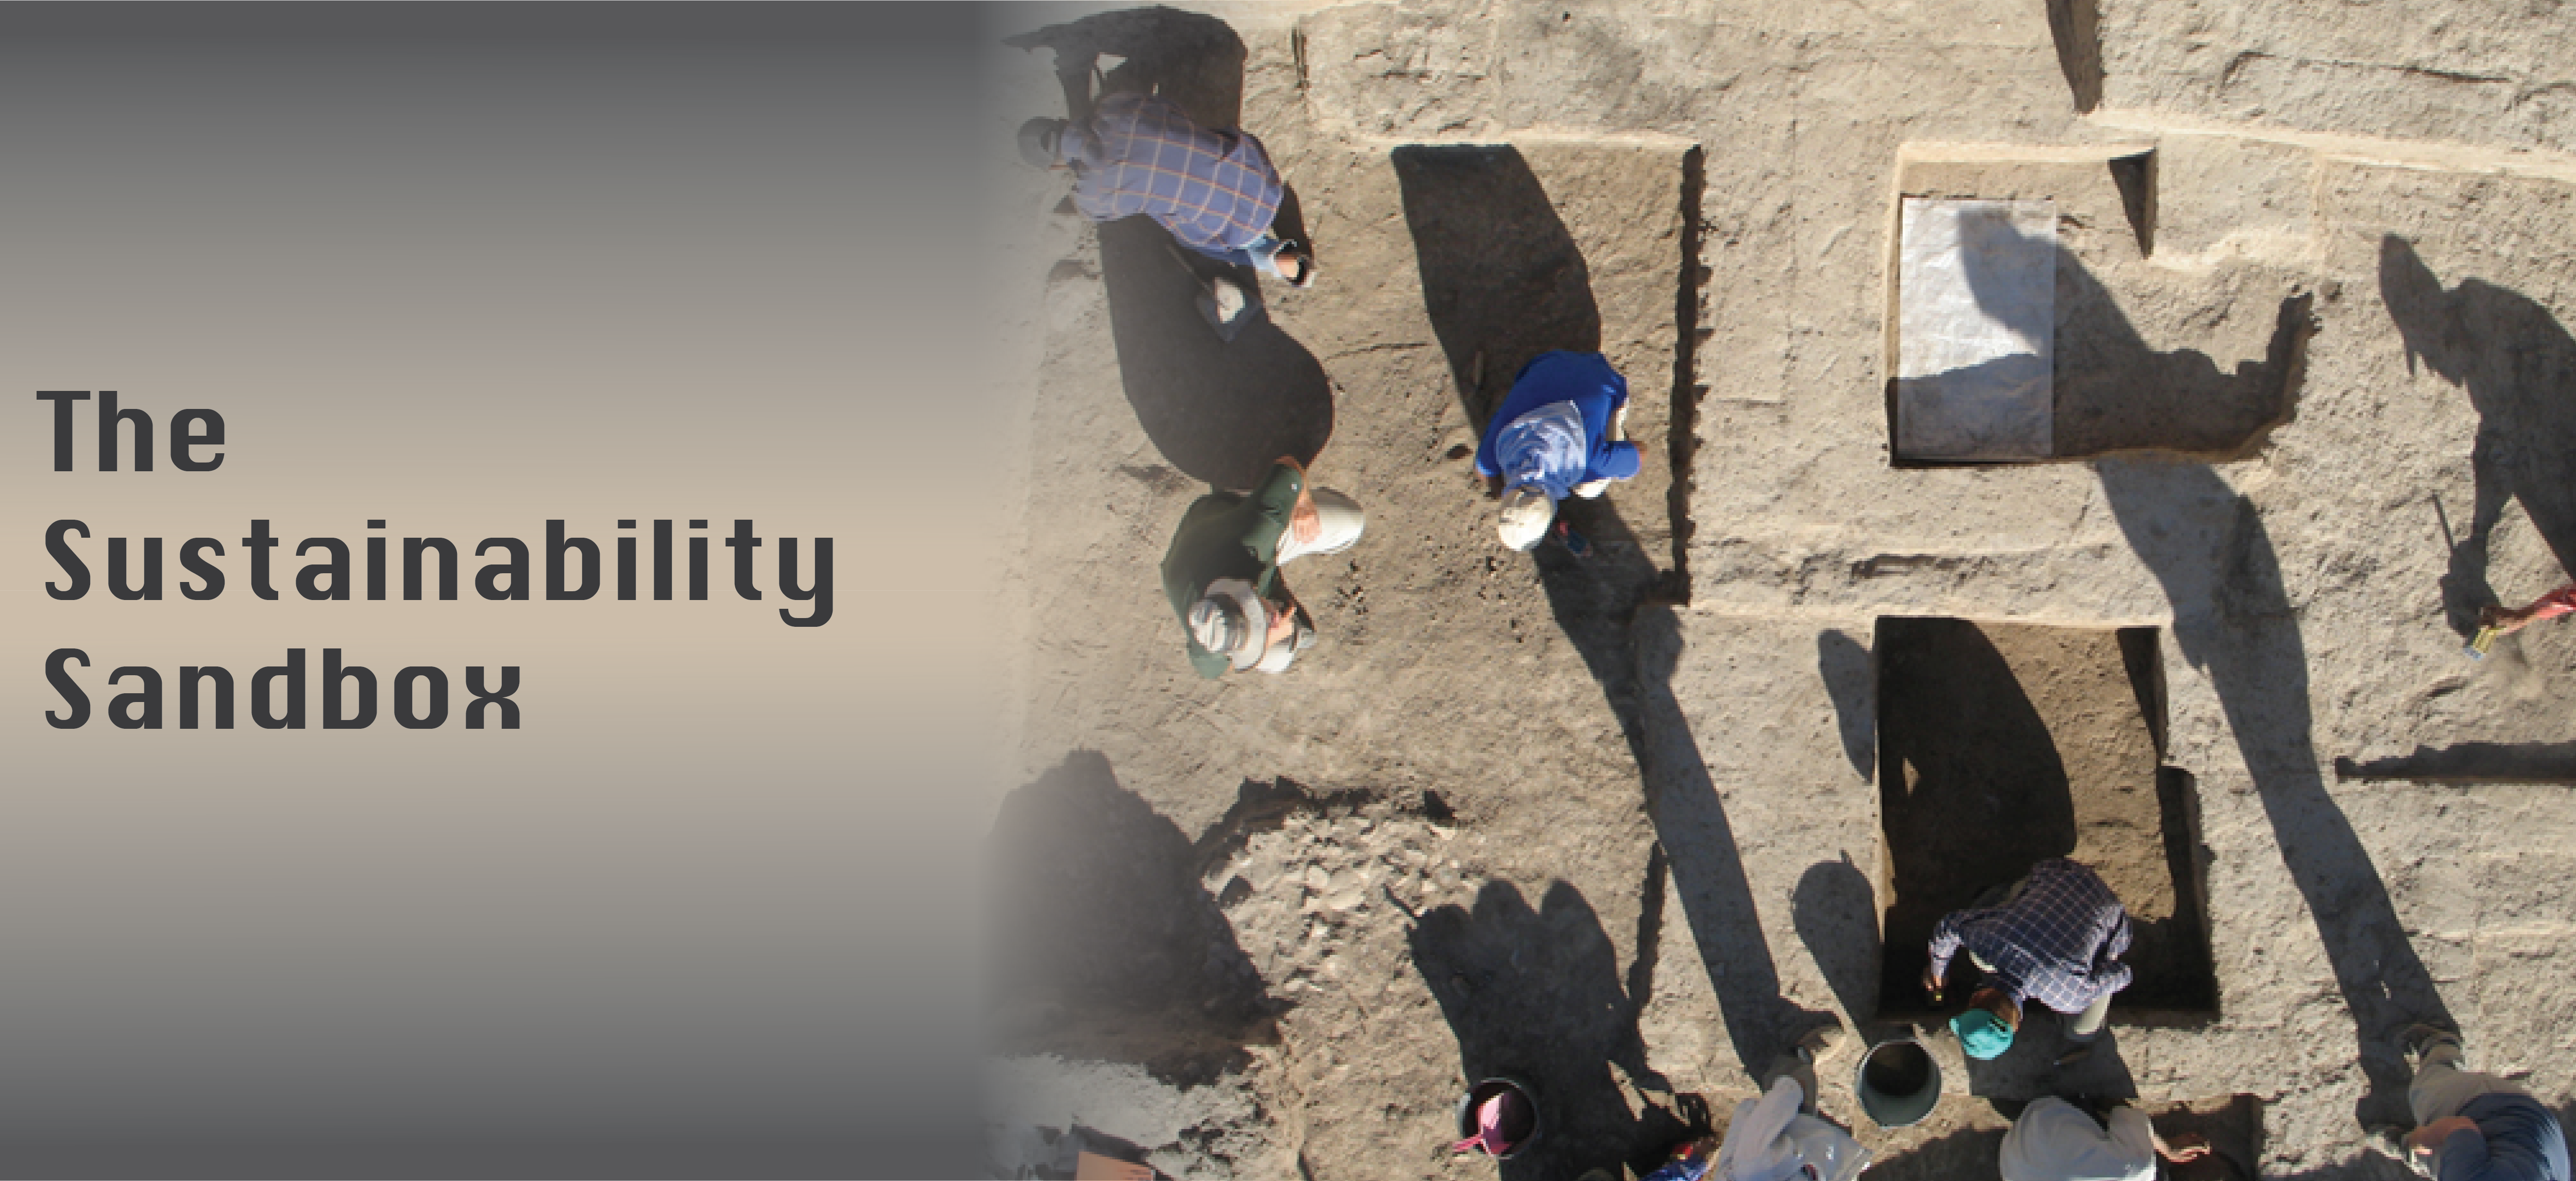 A banner image for The Sustainability Sandbox blog series. At the left side of the image, dark text on a light background that fades to dark grey towards the top and bottom. At the left side of the image, an overhead shot of several archaeologists working in trenches.